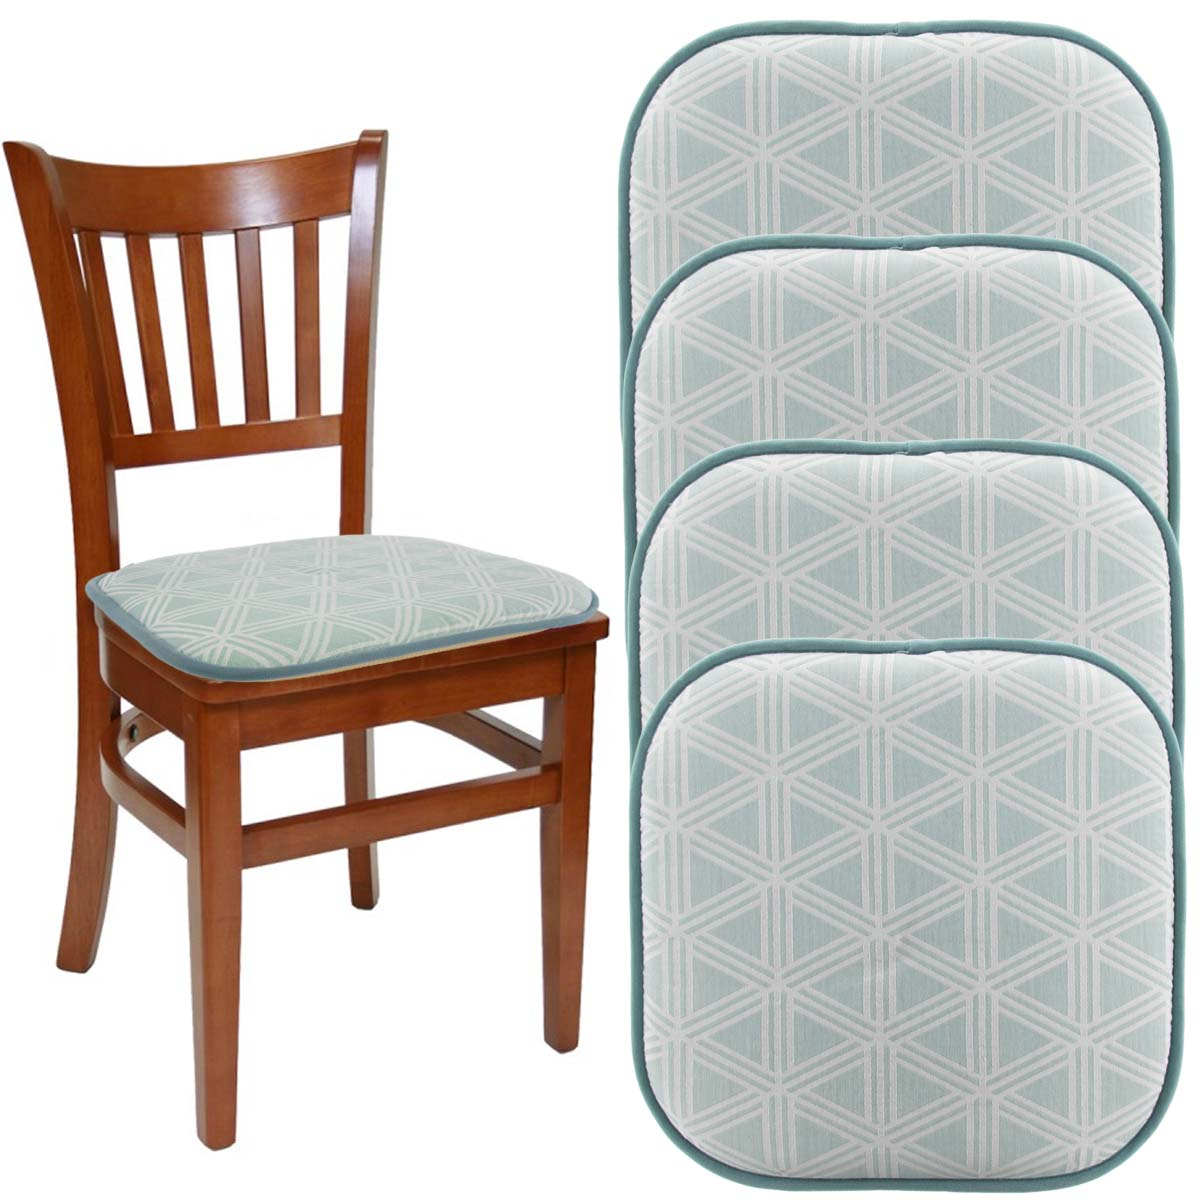 Dream Home (Set Of 4) Gripper Chair Pads For Office Chairs, 16u201d